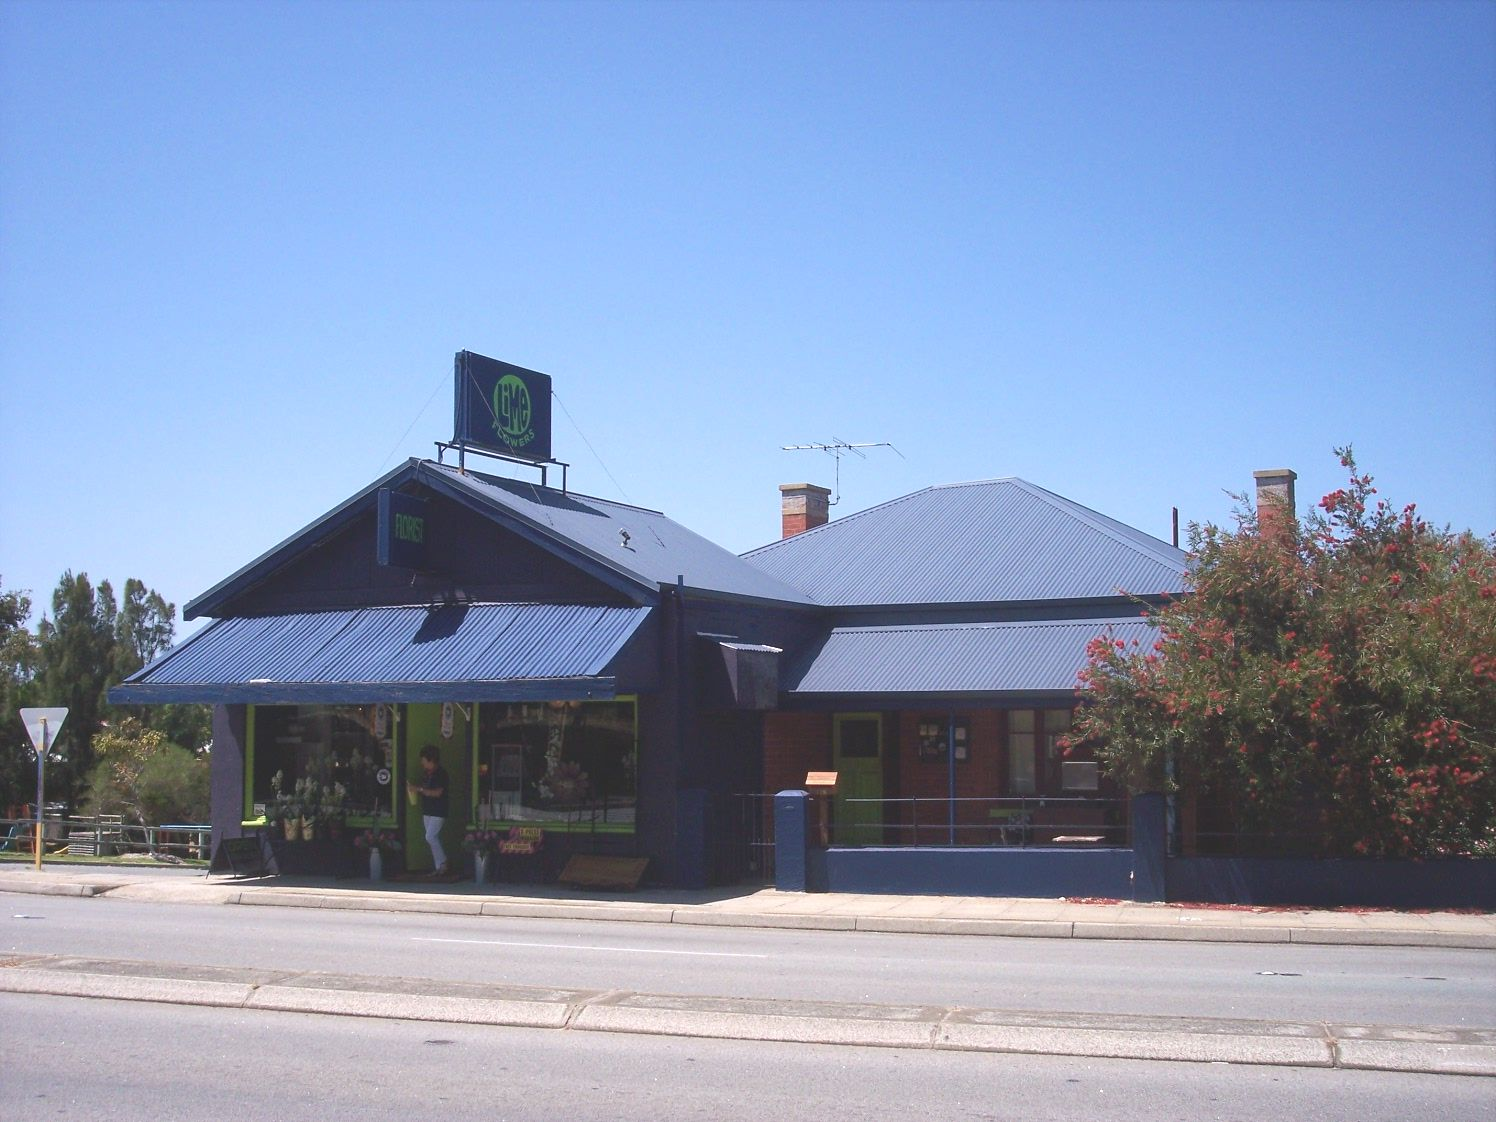 31-10-06 View S 235 Canning Highway.jpg